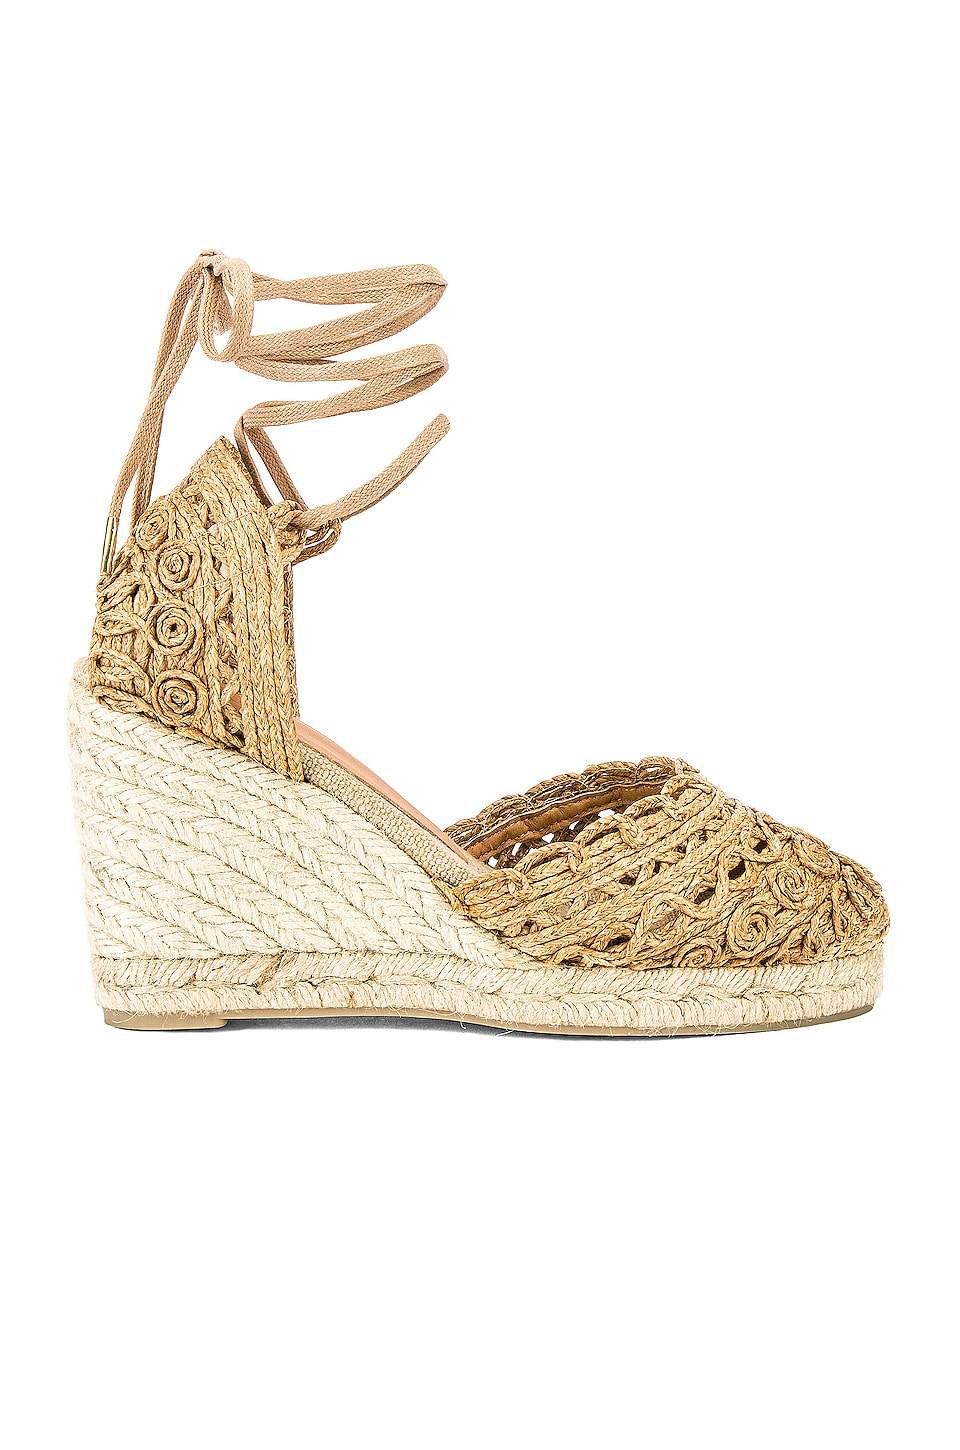 Castaner Carina Wedge in Tostado